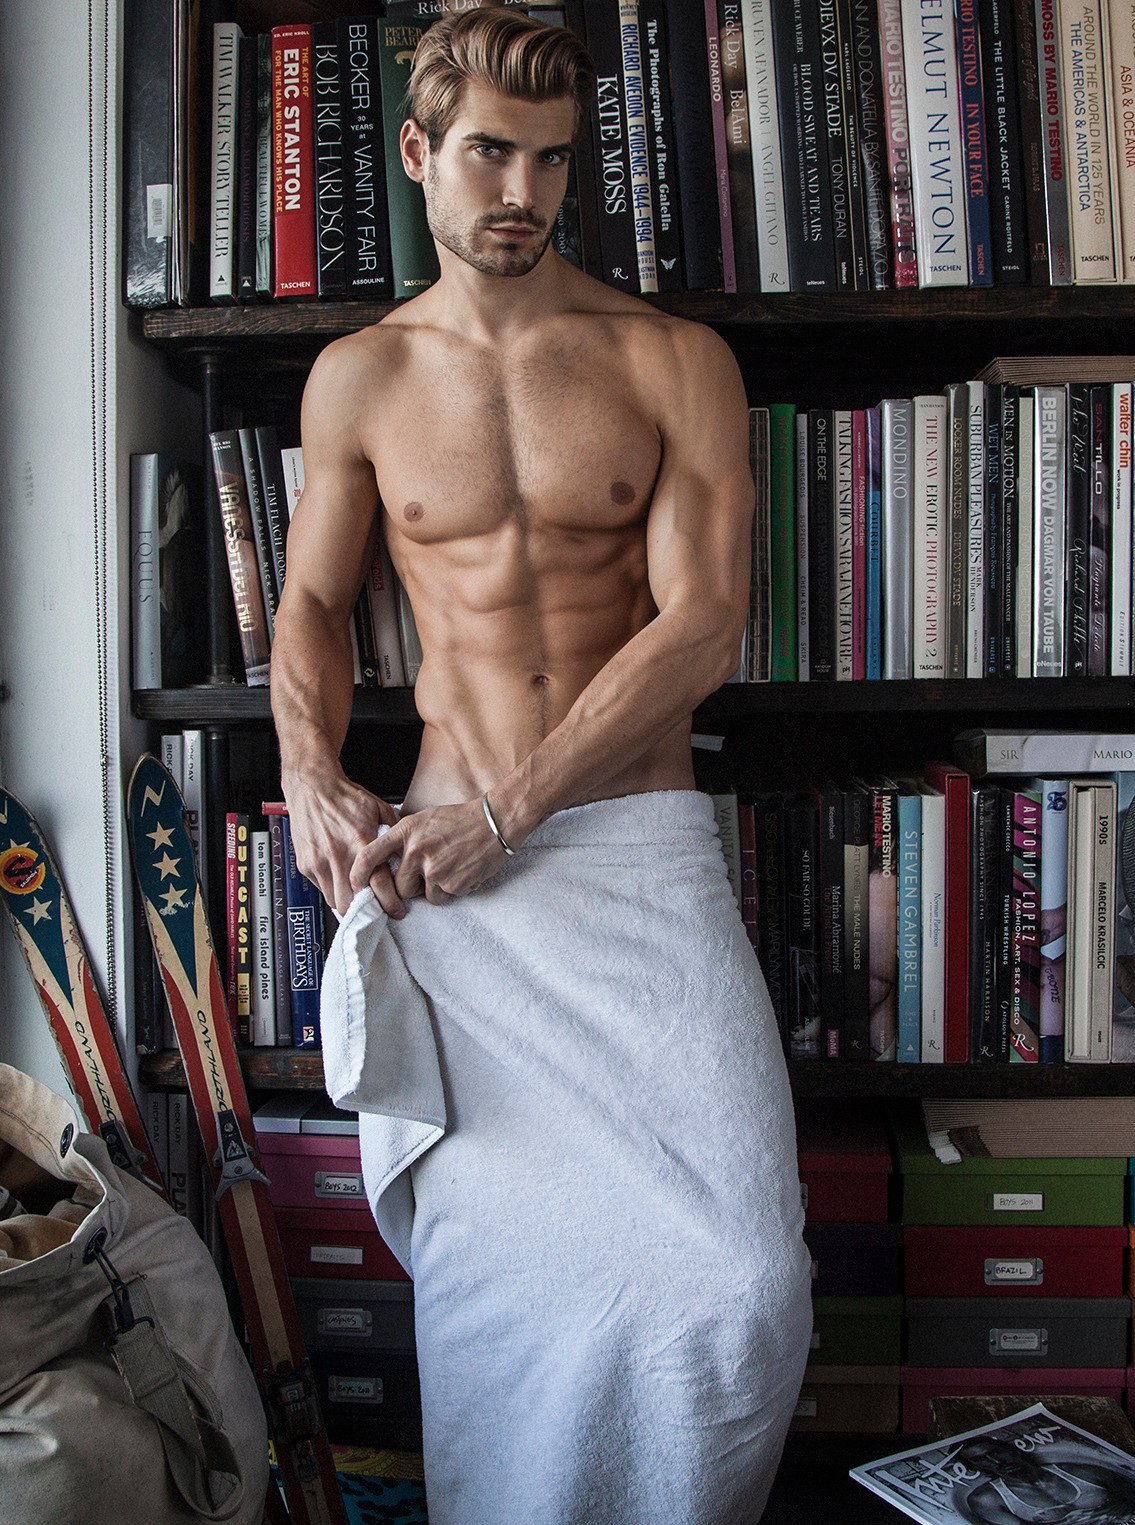 Anthony Pecoraro Porn draped in towels - page 28 - themed images - adonismale